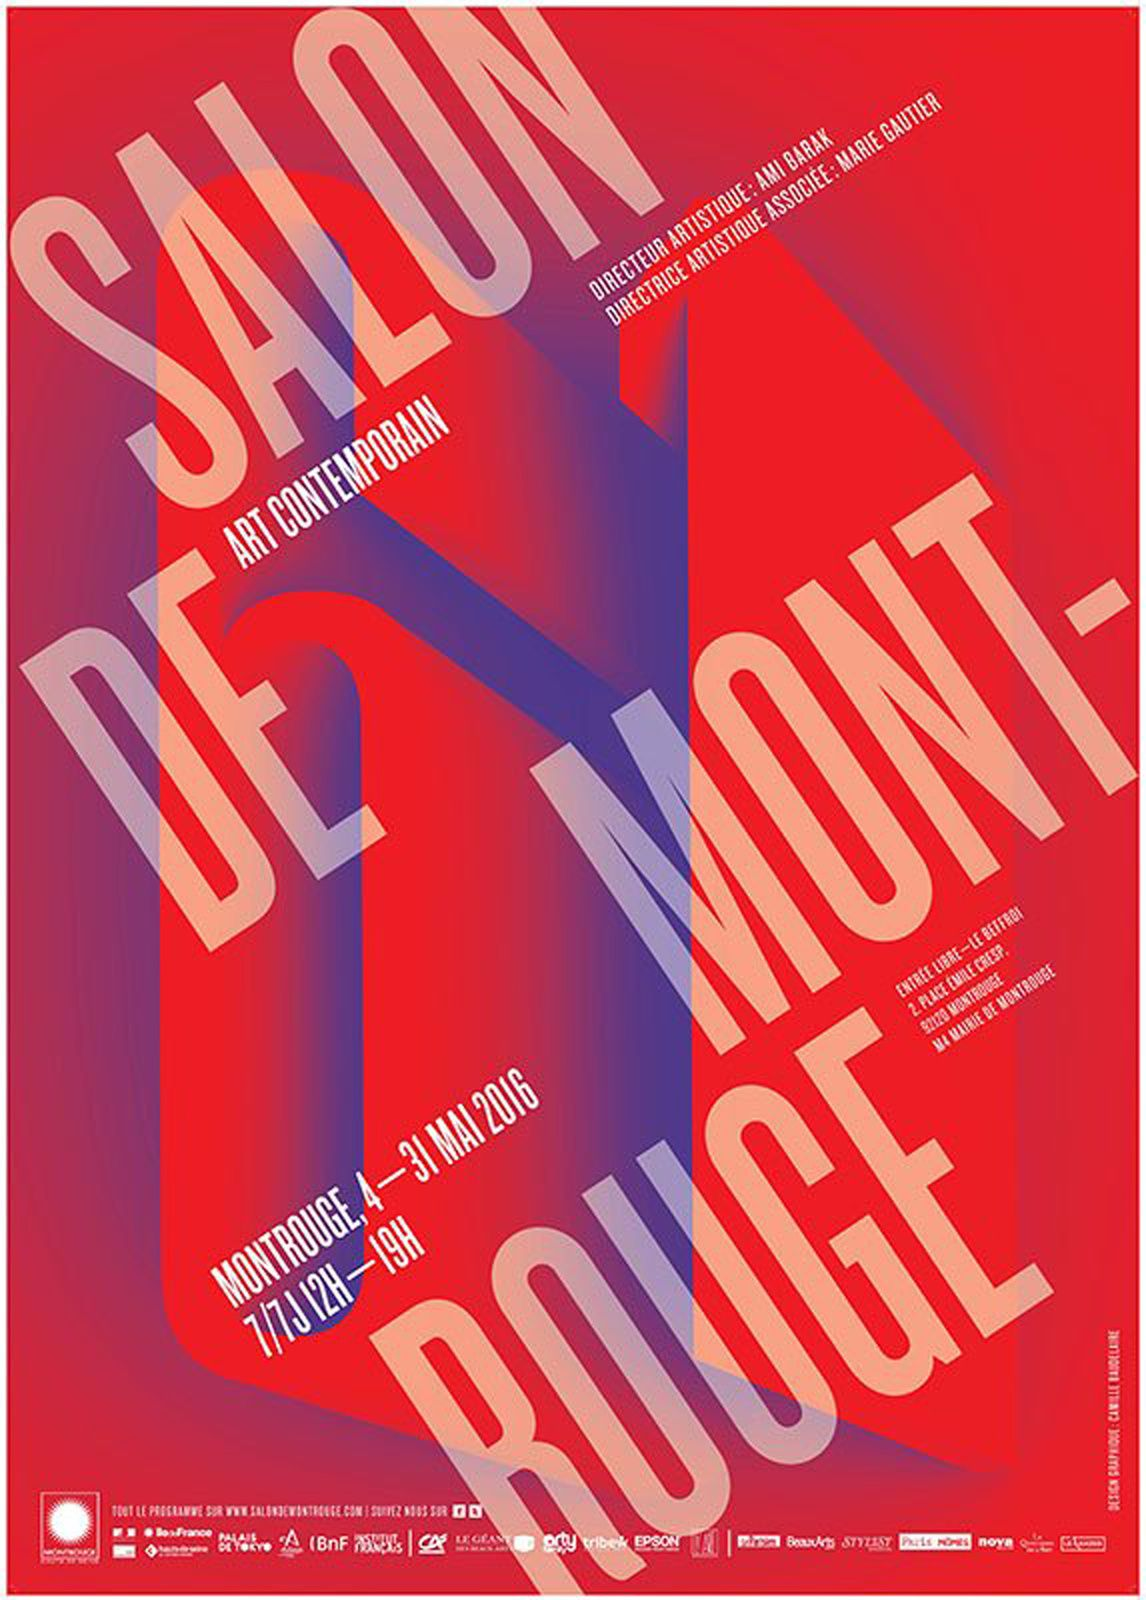 61eme Salon de Montrouge